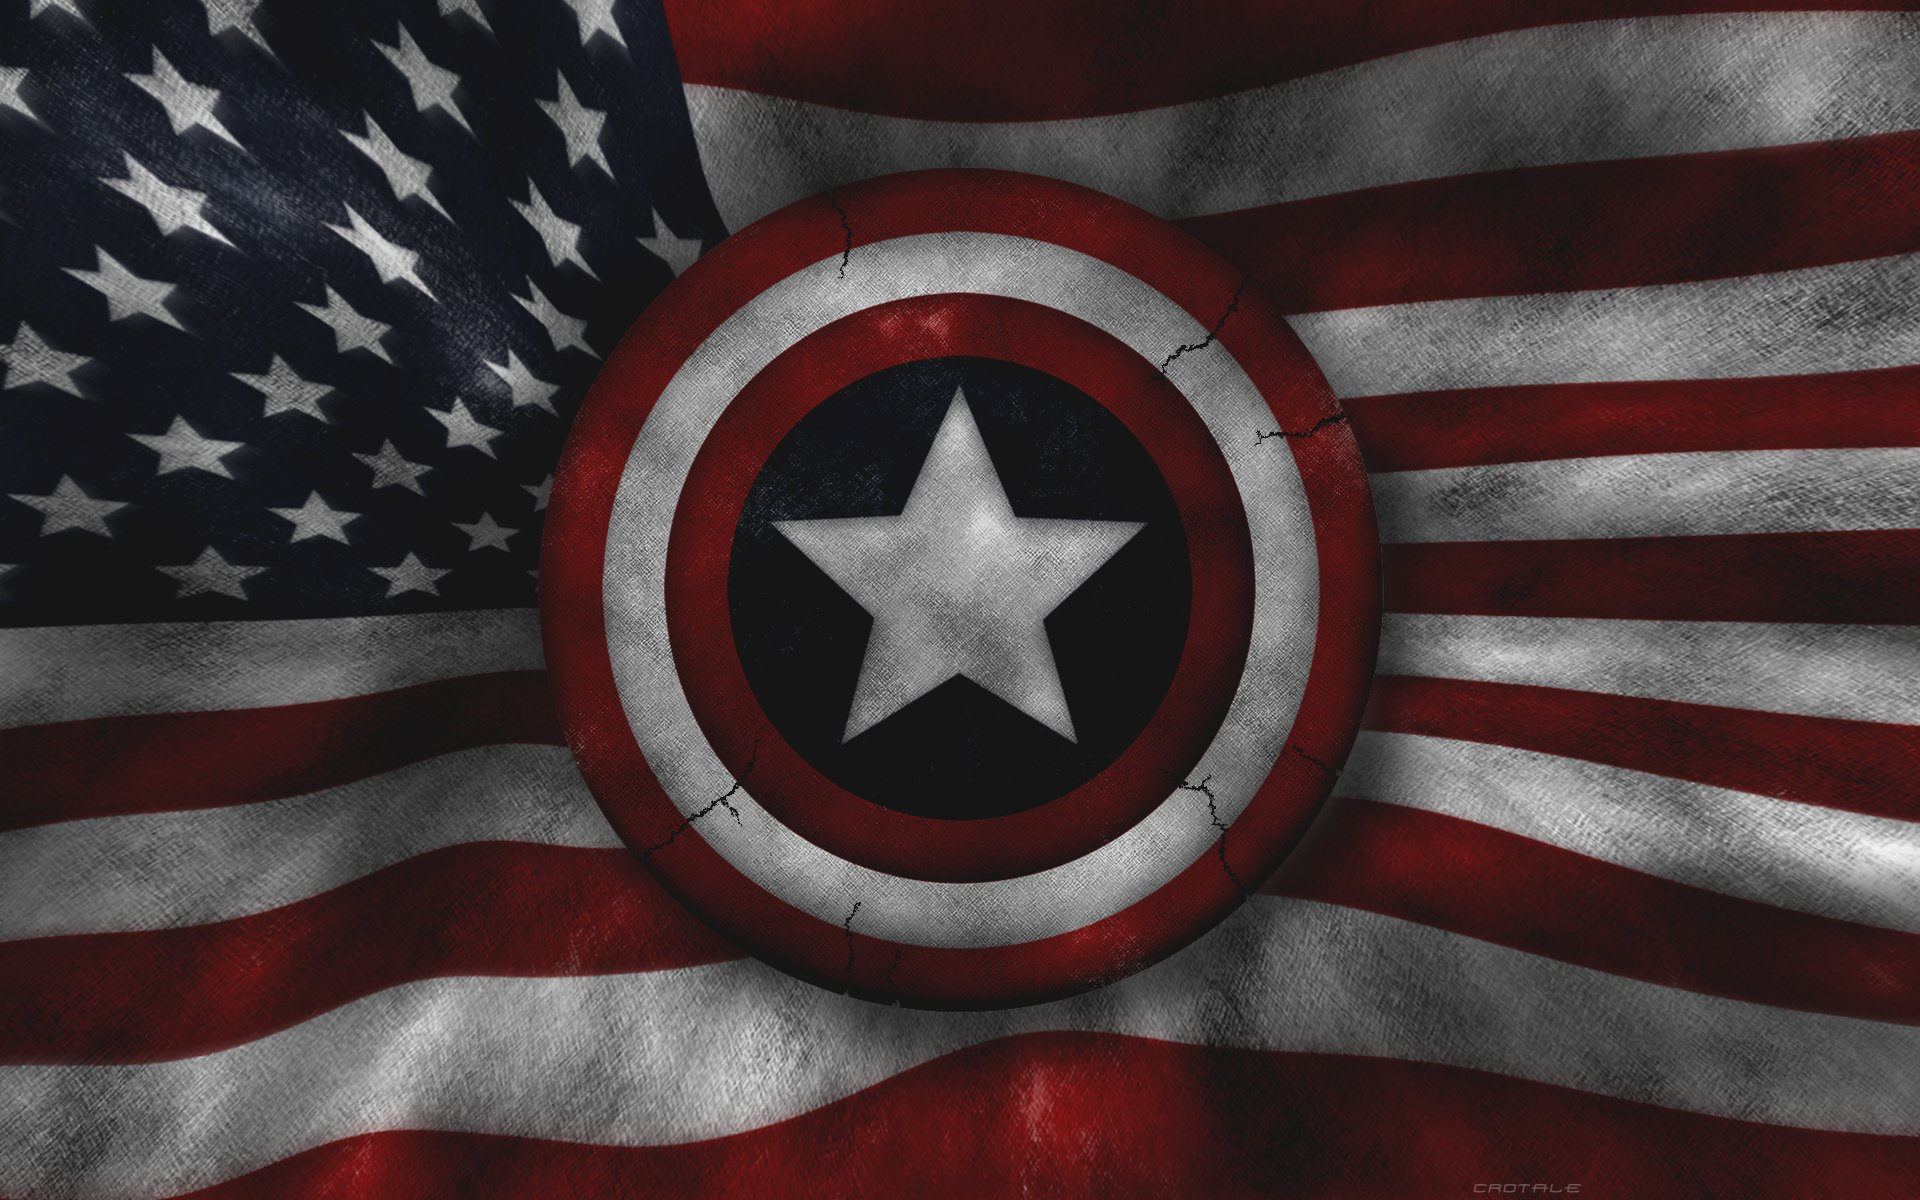 472 Captain America HD Wallpapers | Backgrounds - Wallpaper Abyss